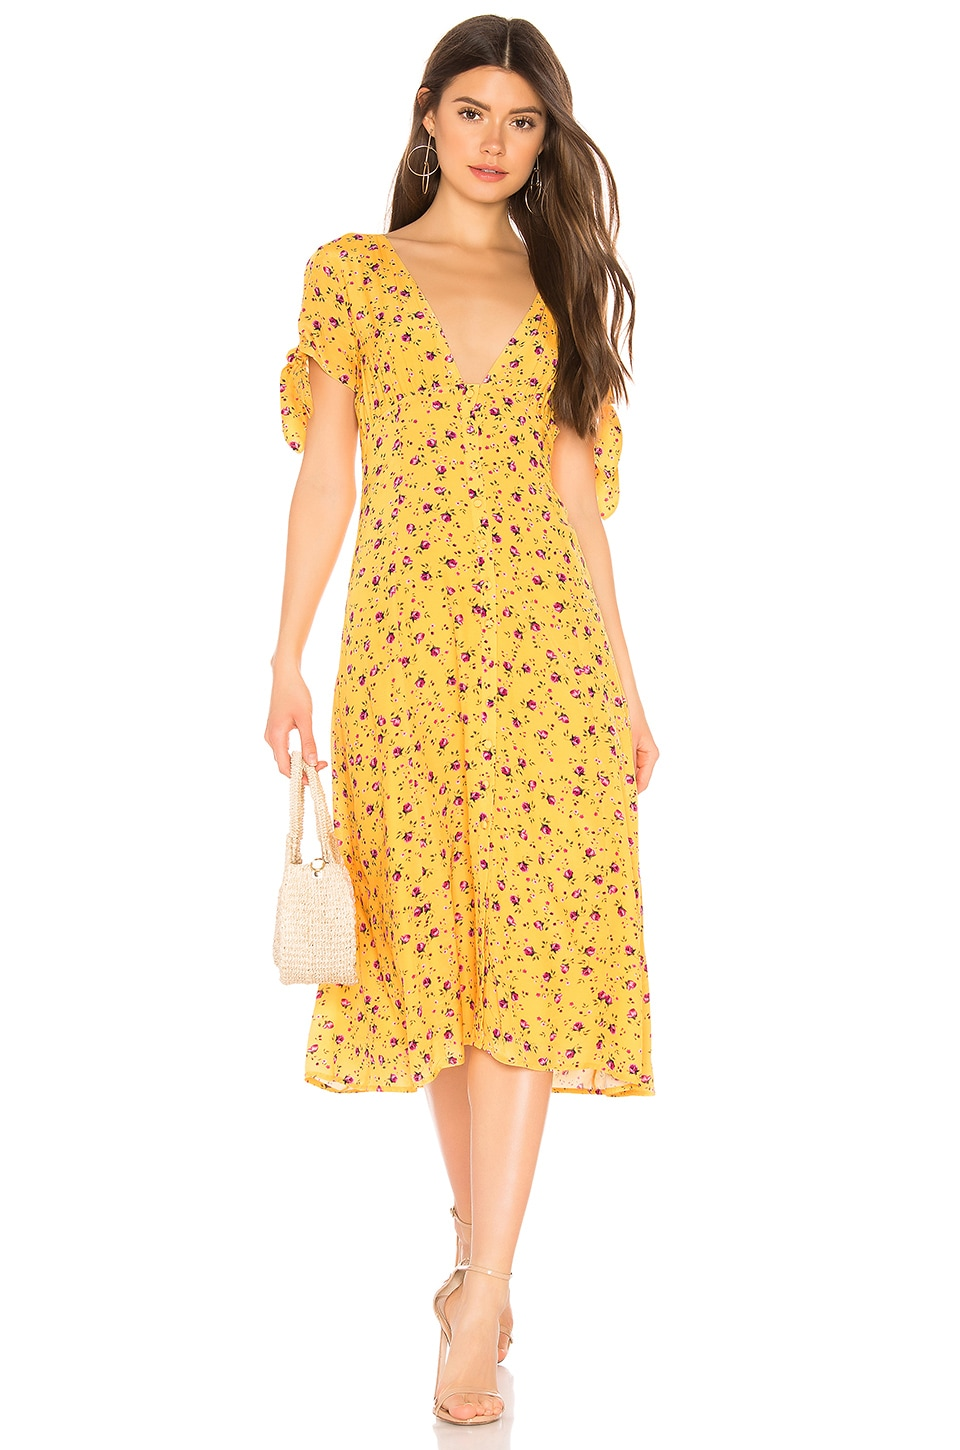 Privacy Please Hermosa Midi Dress in Yellow & Pink Floral